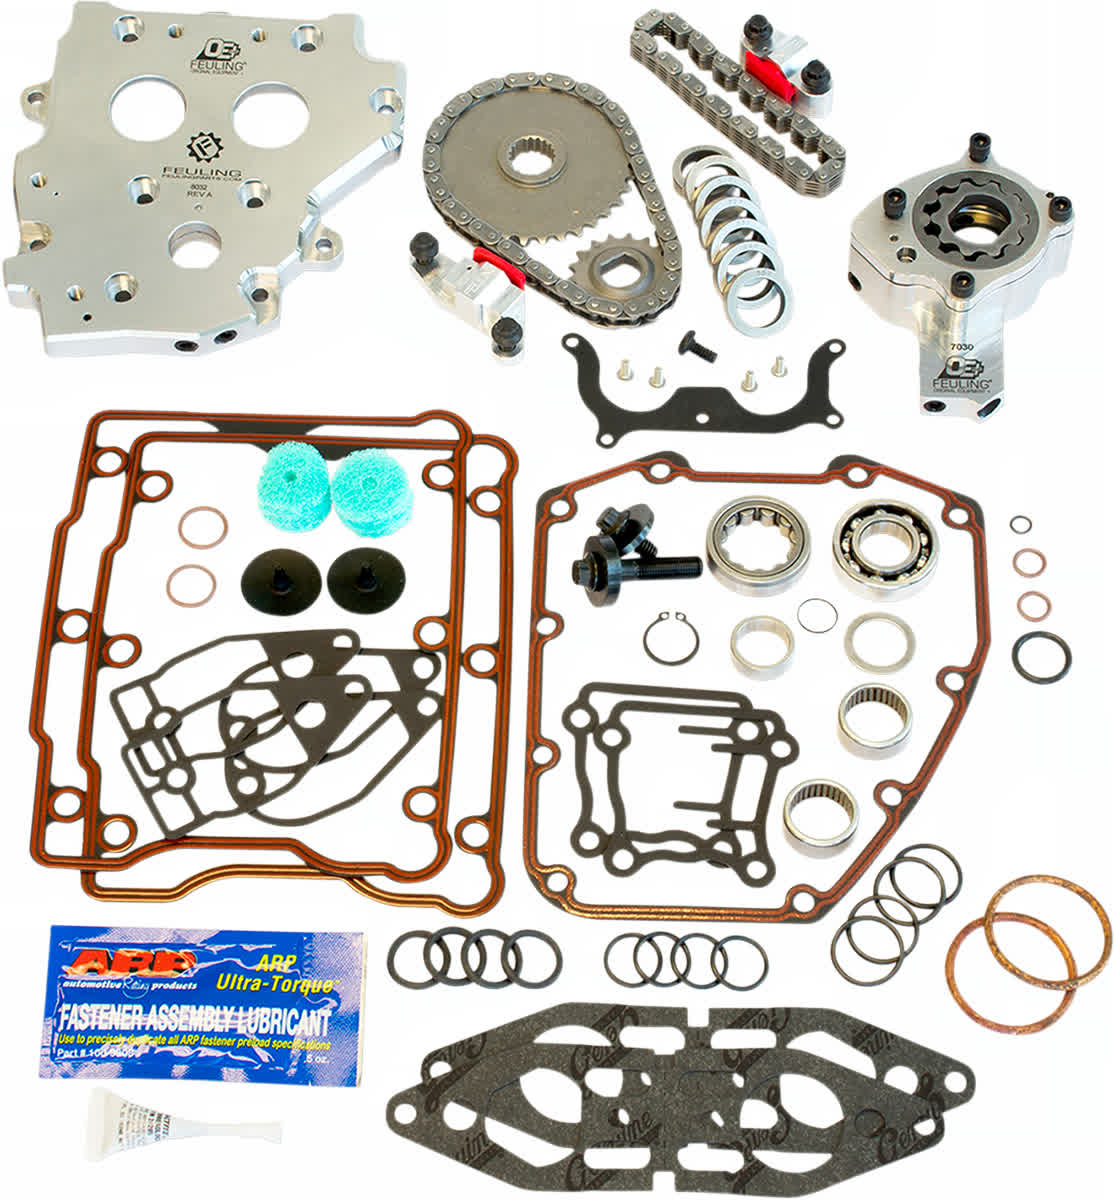 Feuling 7090 OE+ Hydraulic Cam Chain Tensioner Conversion Kit 99-06